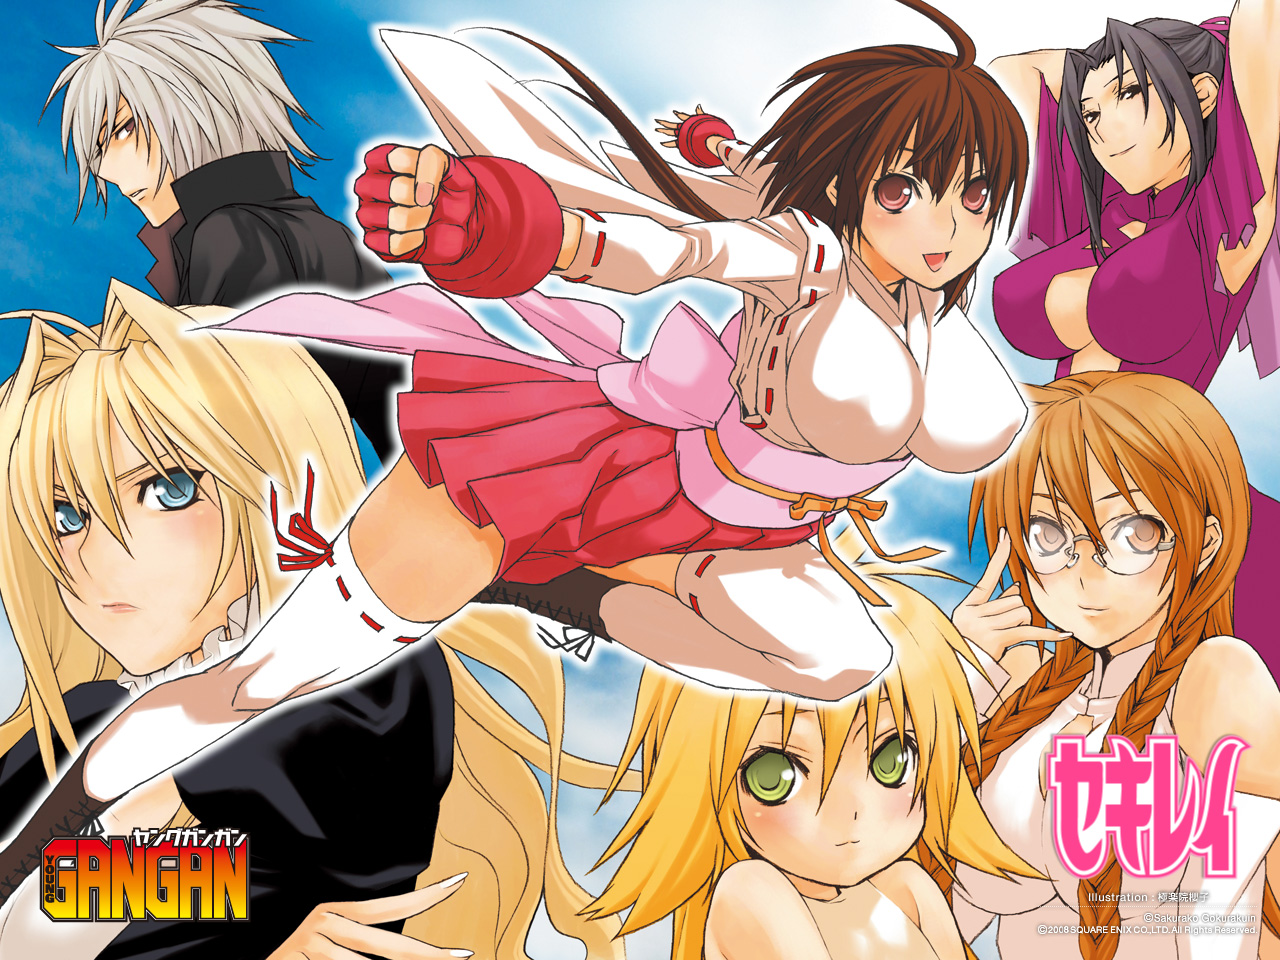 Season 2 Sekirei http://animezone-episodes.blogspot.com/2011/12/sekirei-season-1-and-2.html